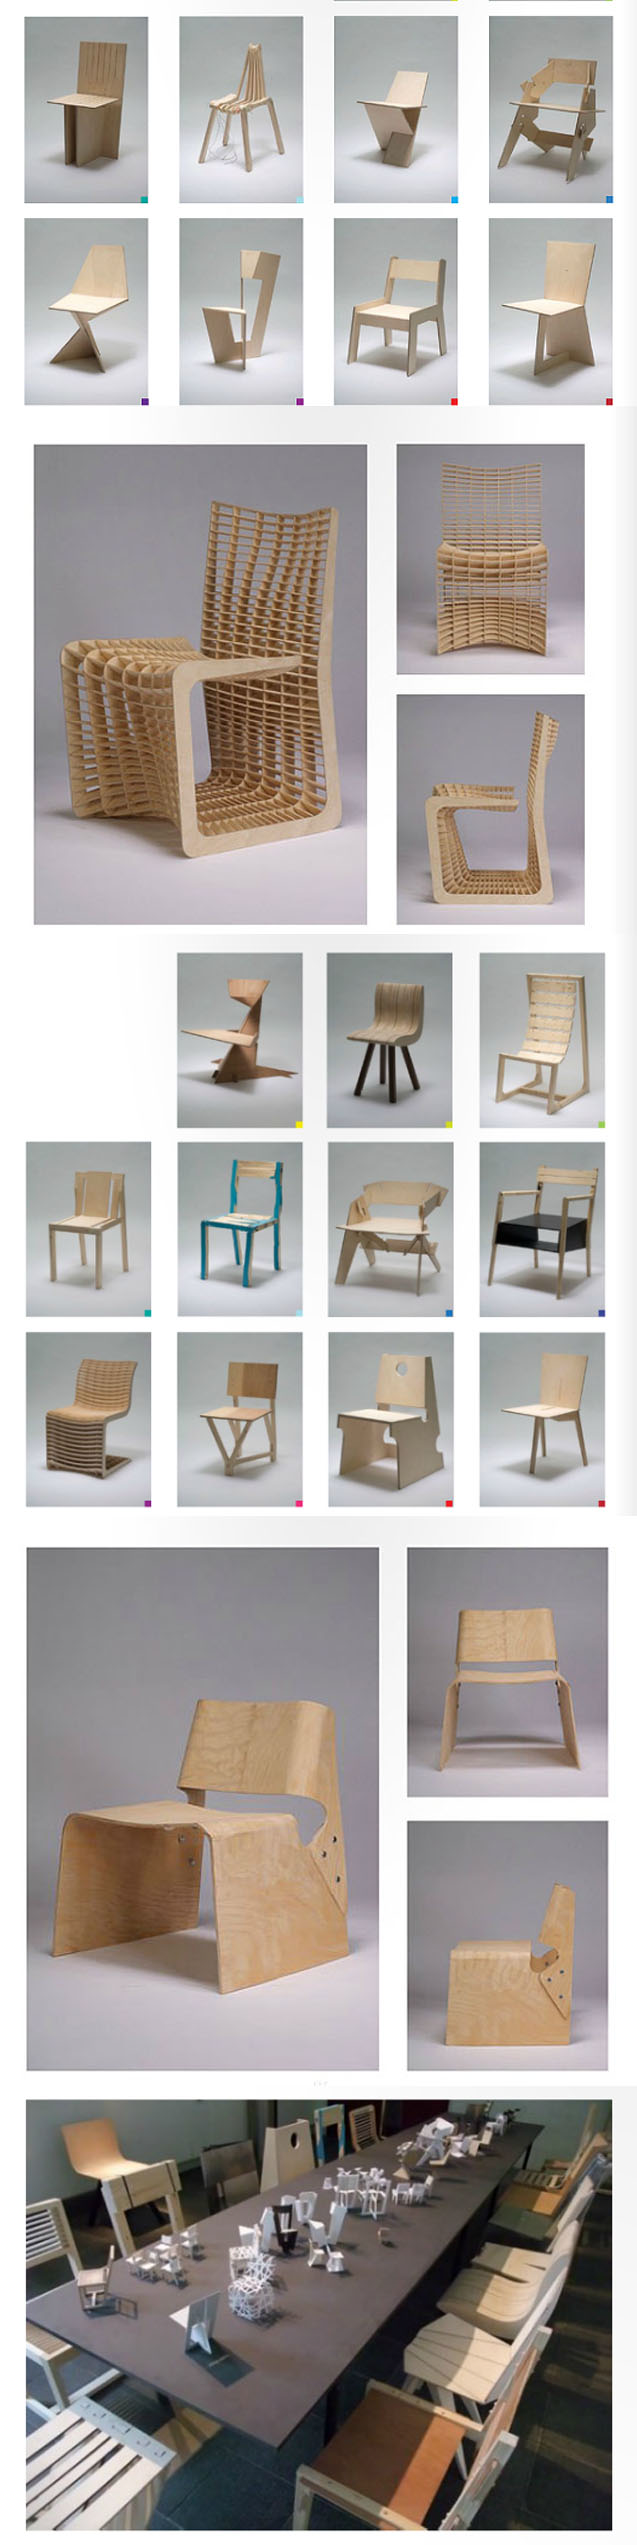 One Chair a Week, Royal Danish Academy of Fine Arts, Architecture School, Students built Full-scale chairs